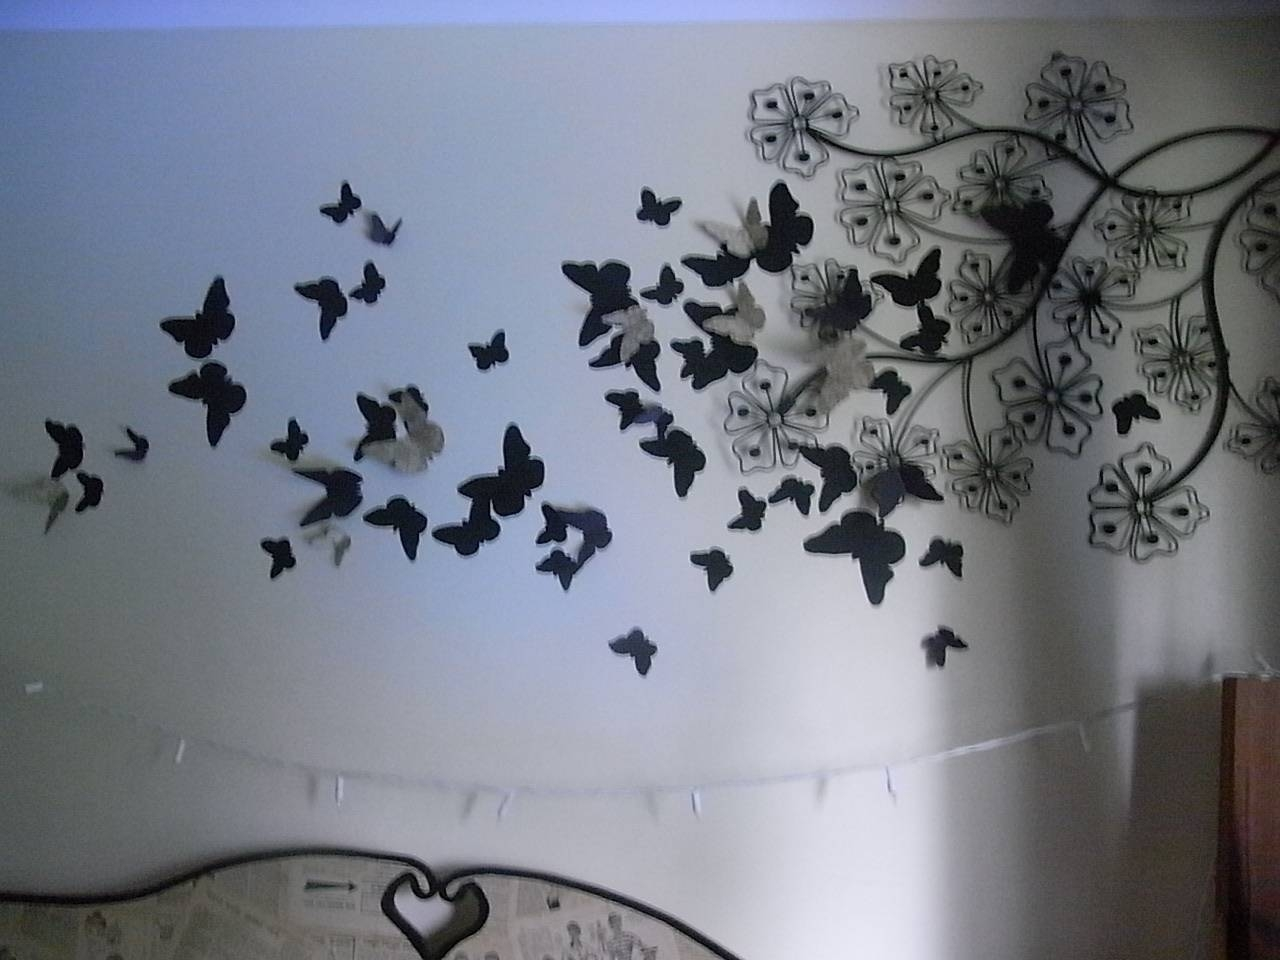 Diy 3d Wall Art Butterflies | Wallartideas Pertaining To Current Butterflies 3d Wall Art (View 10 of 20)